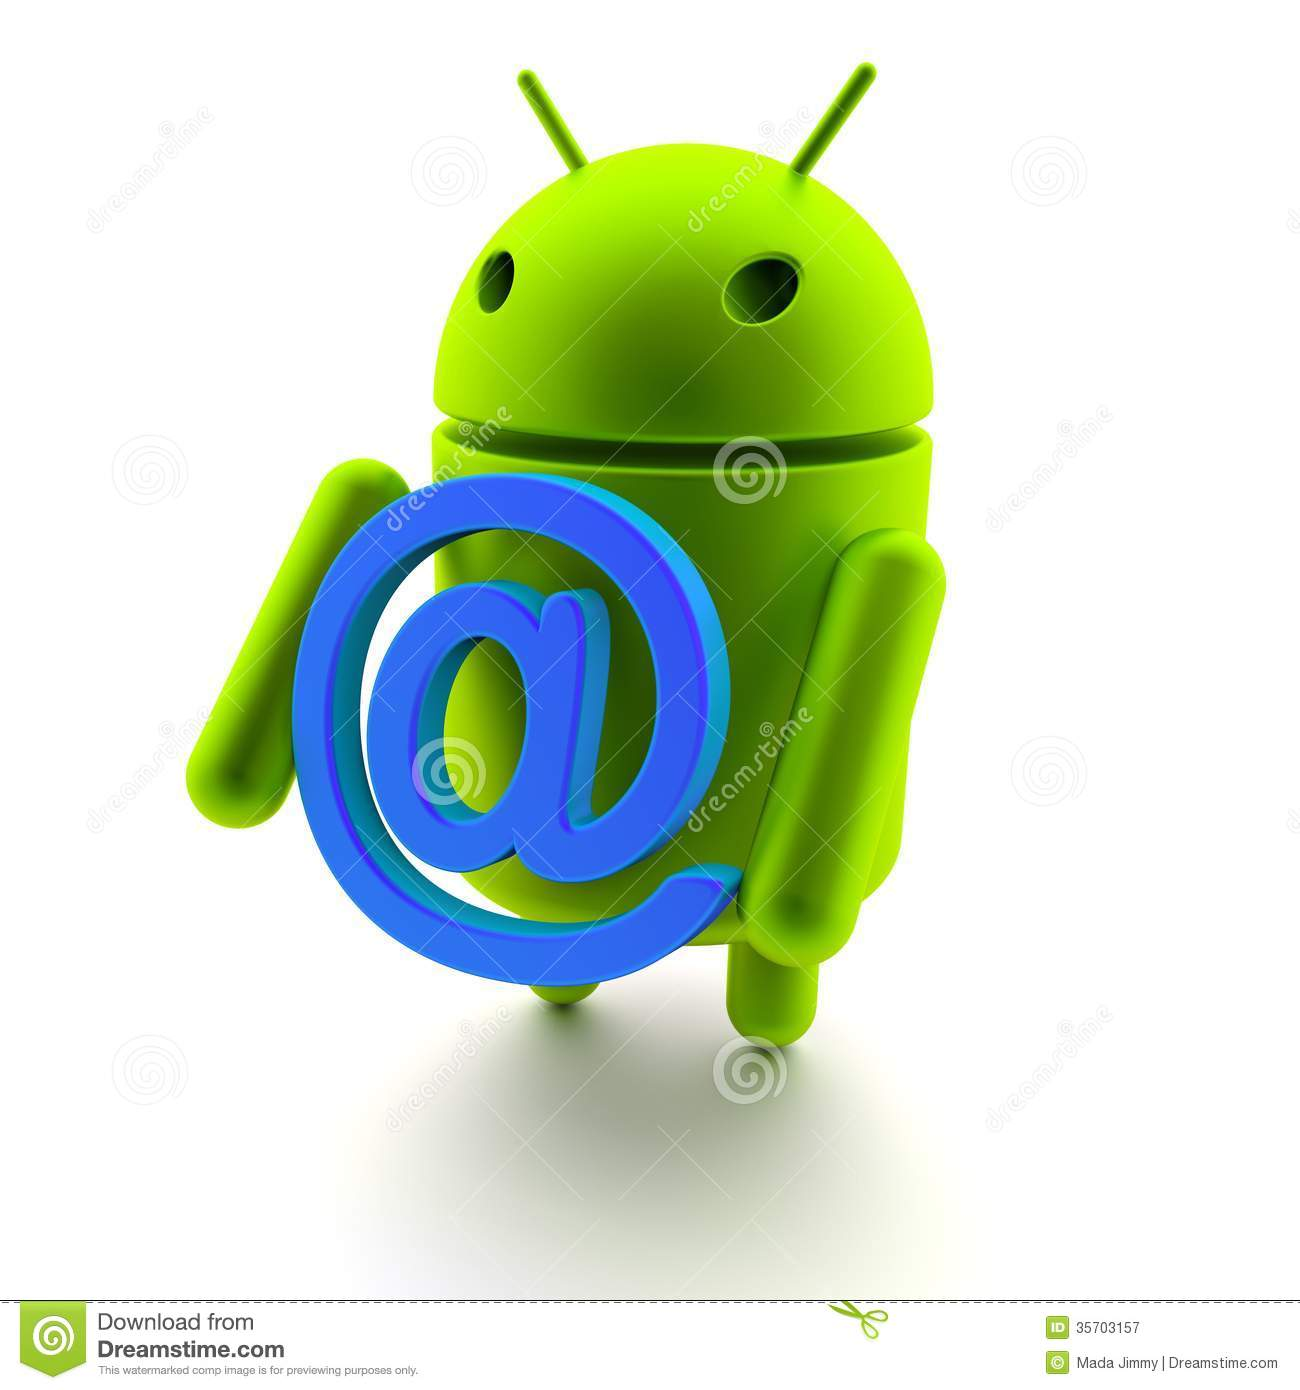 Android 3d model and Internet